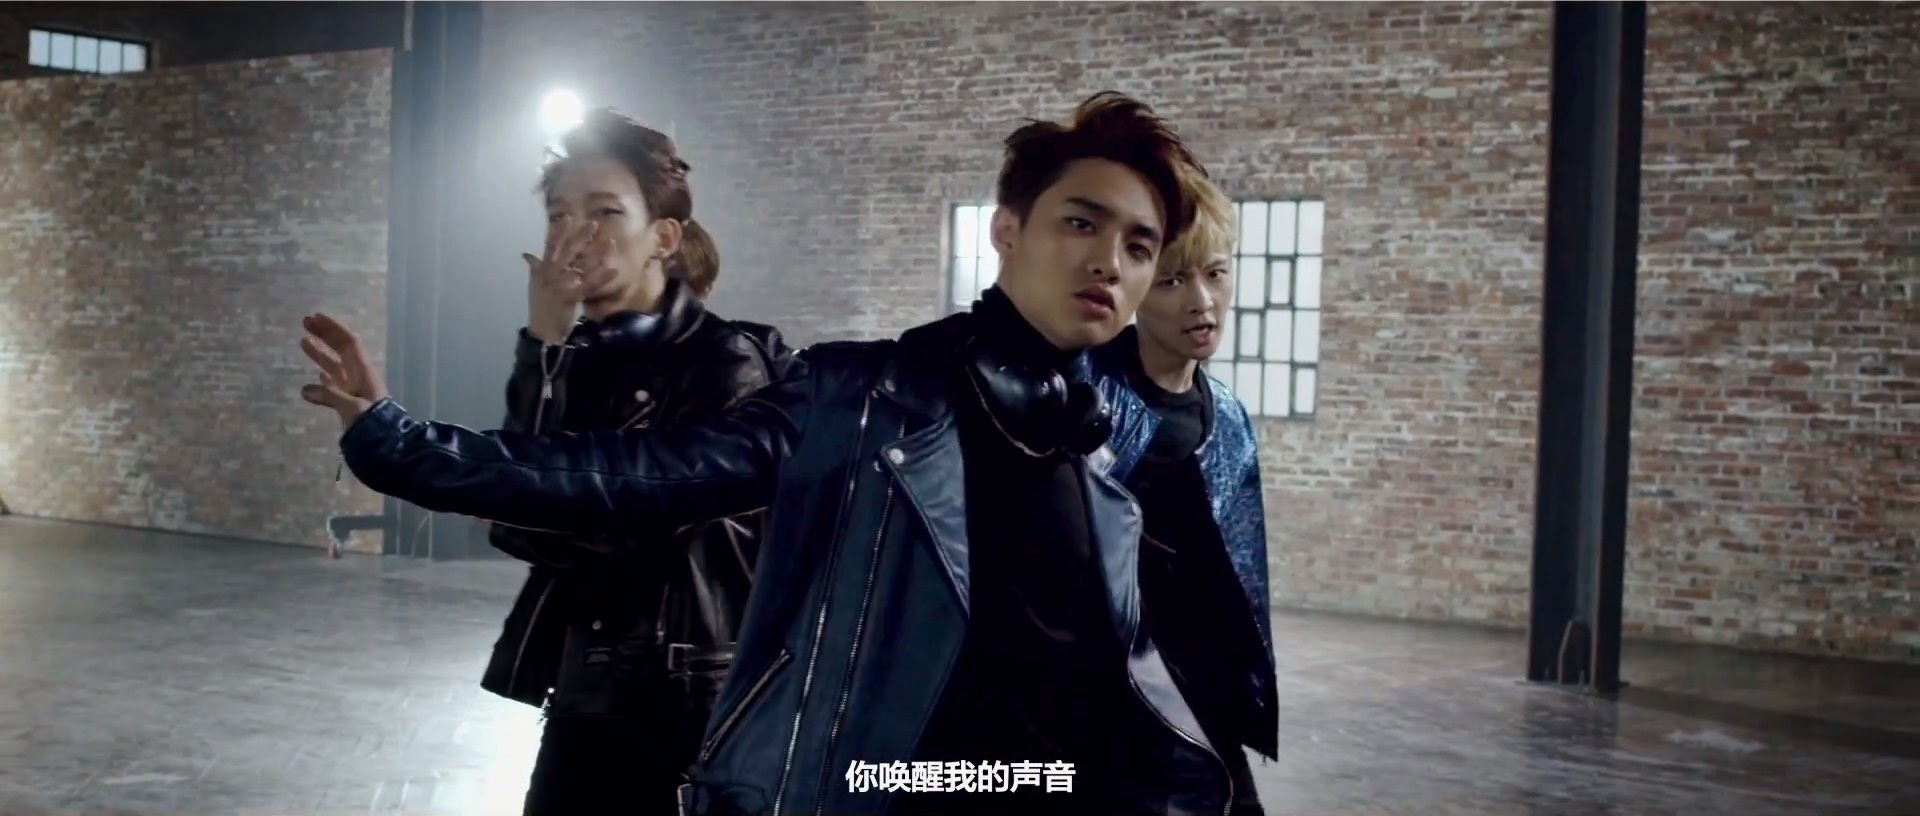 EXO's D.O in Call Me Baby